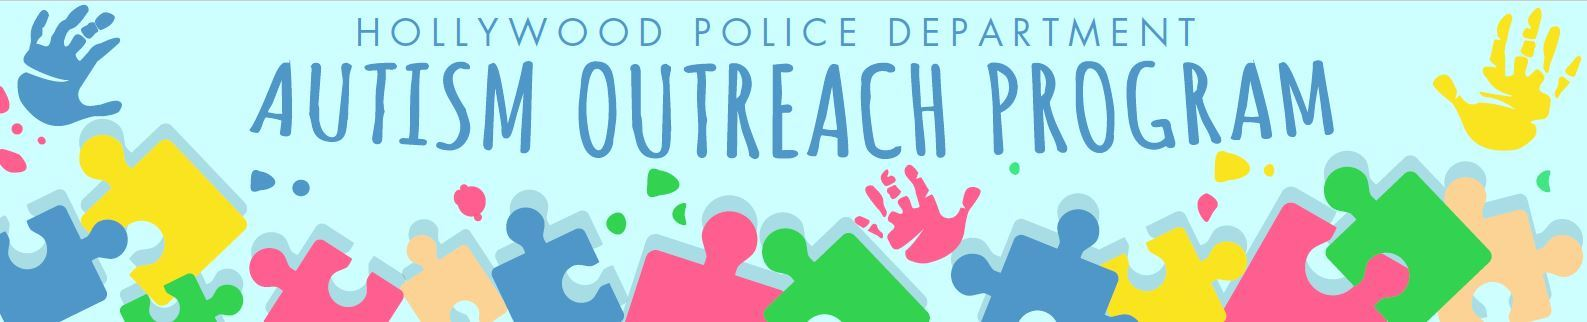 Autism Outreach Program - Banner Graphic for Website